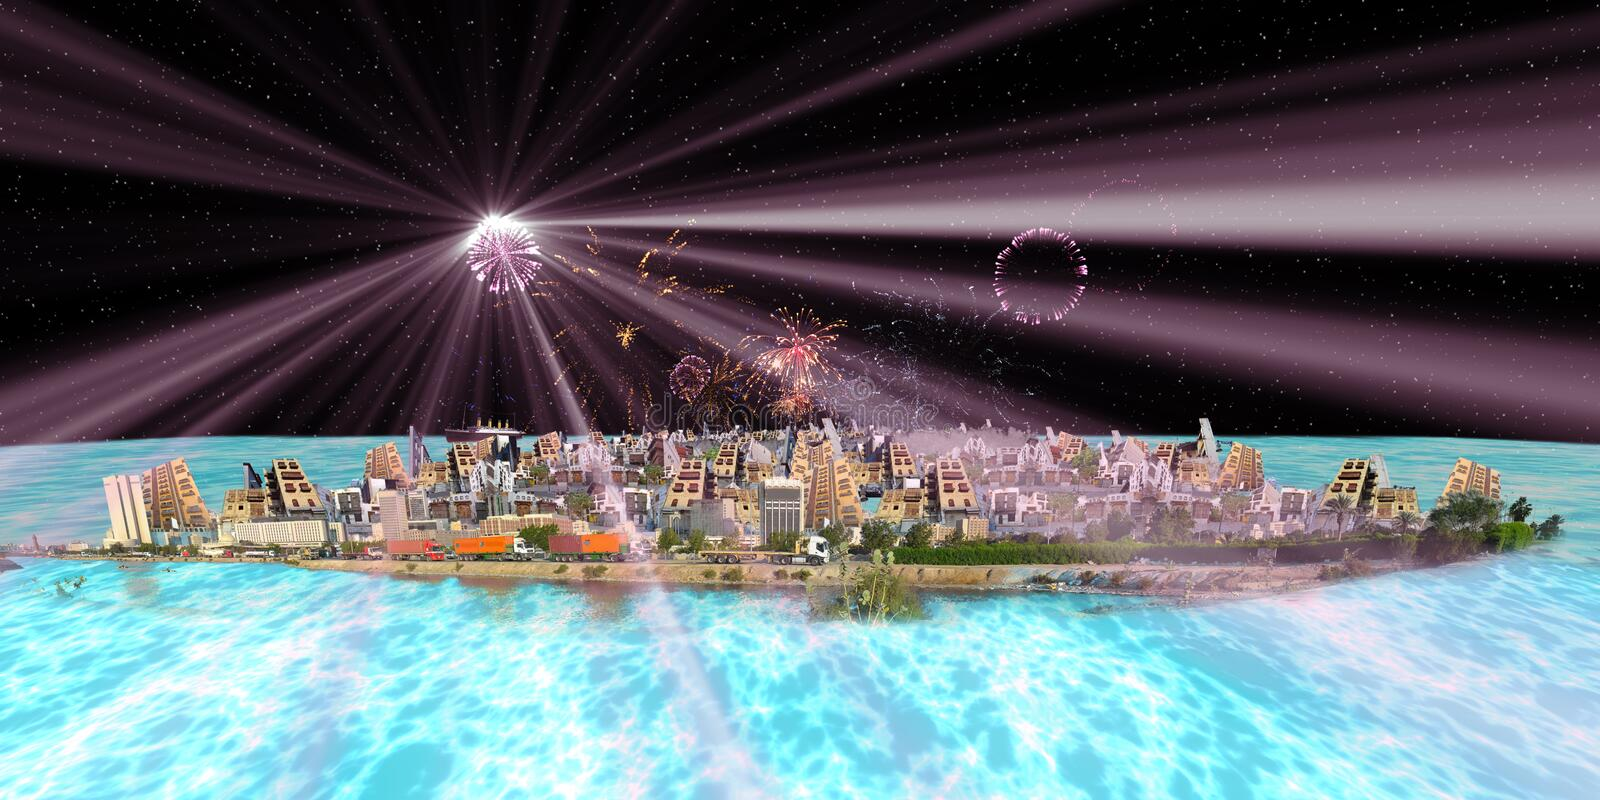 Old and new jeddah over sea at night with fireworks vector illustration